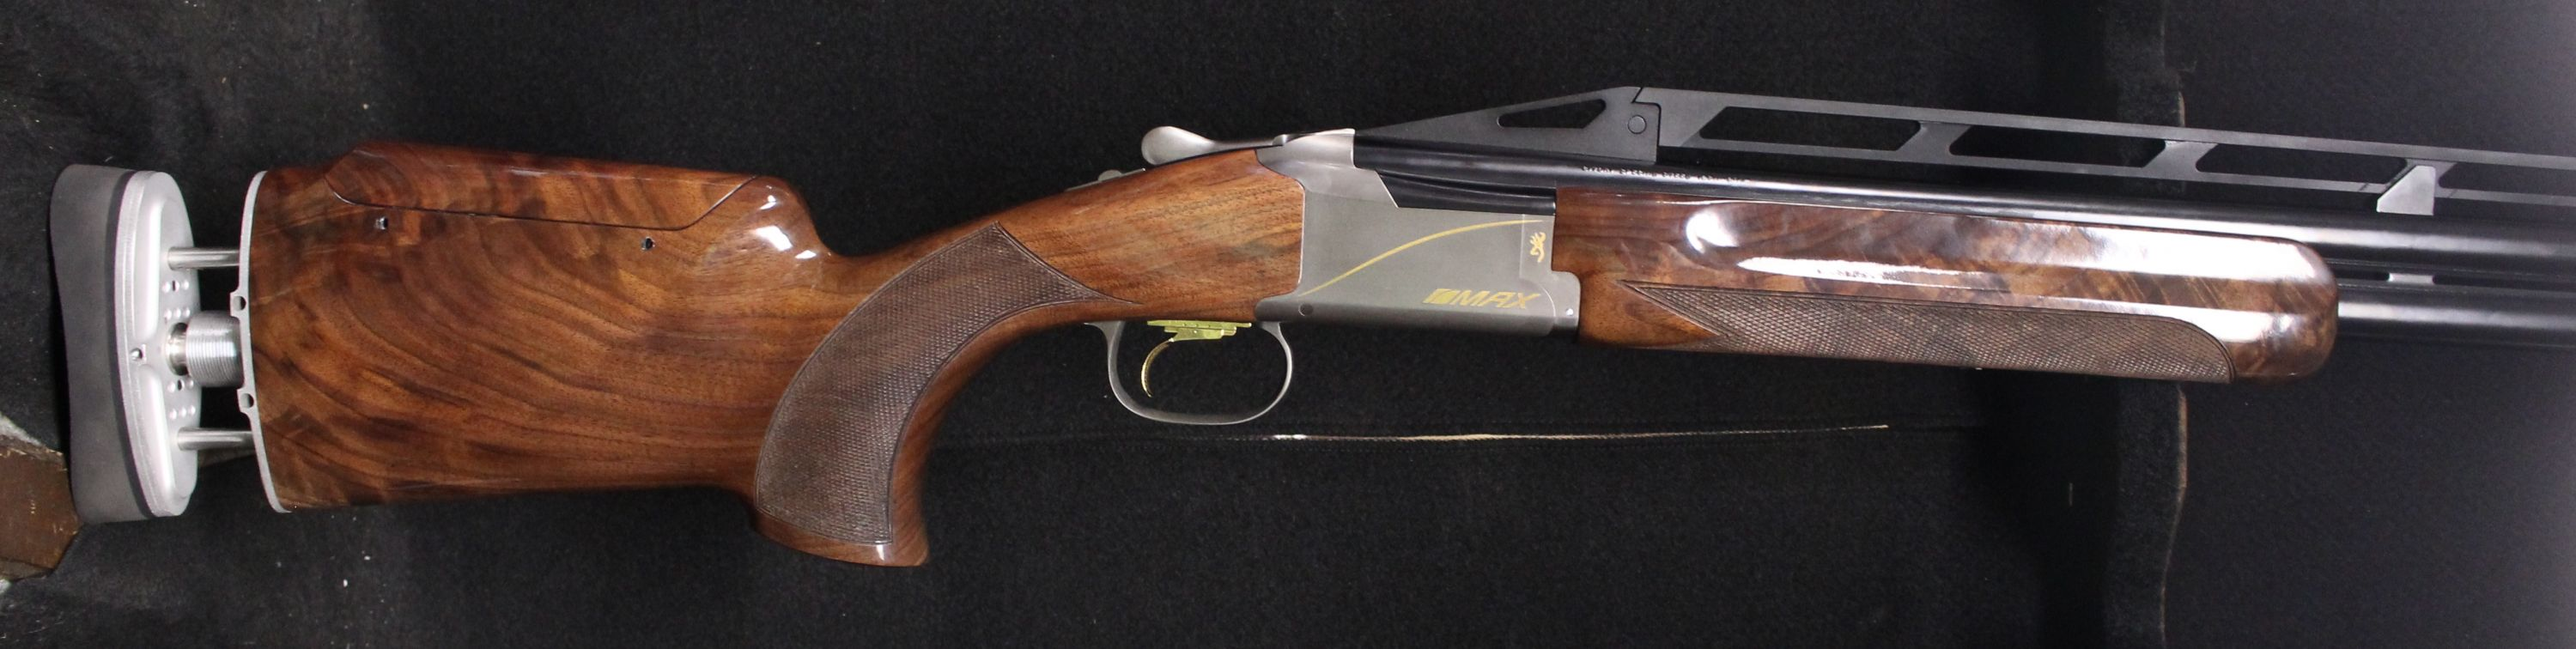 Browning Citori 725 Trap Max